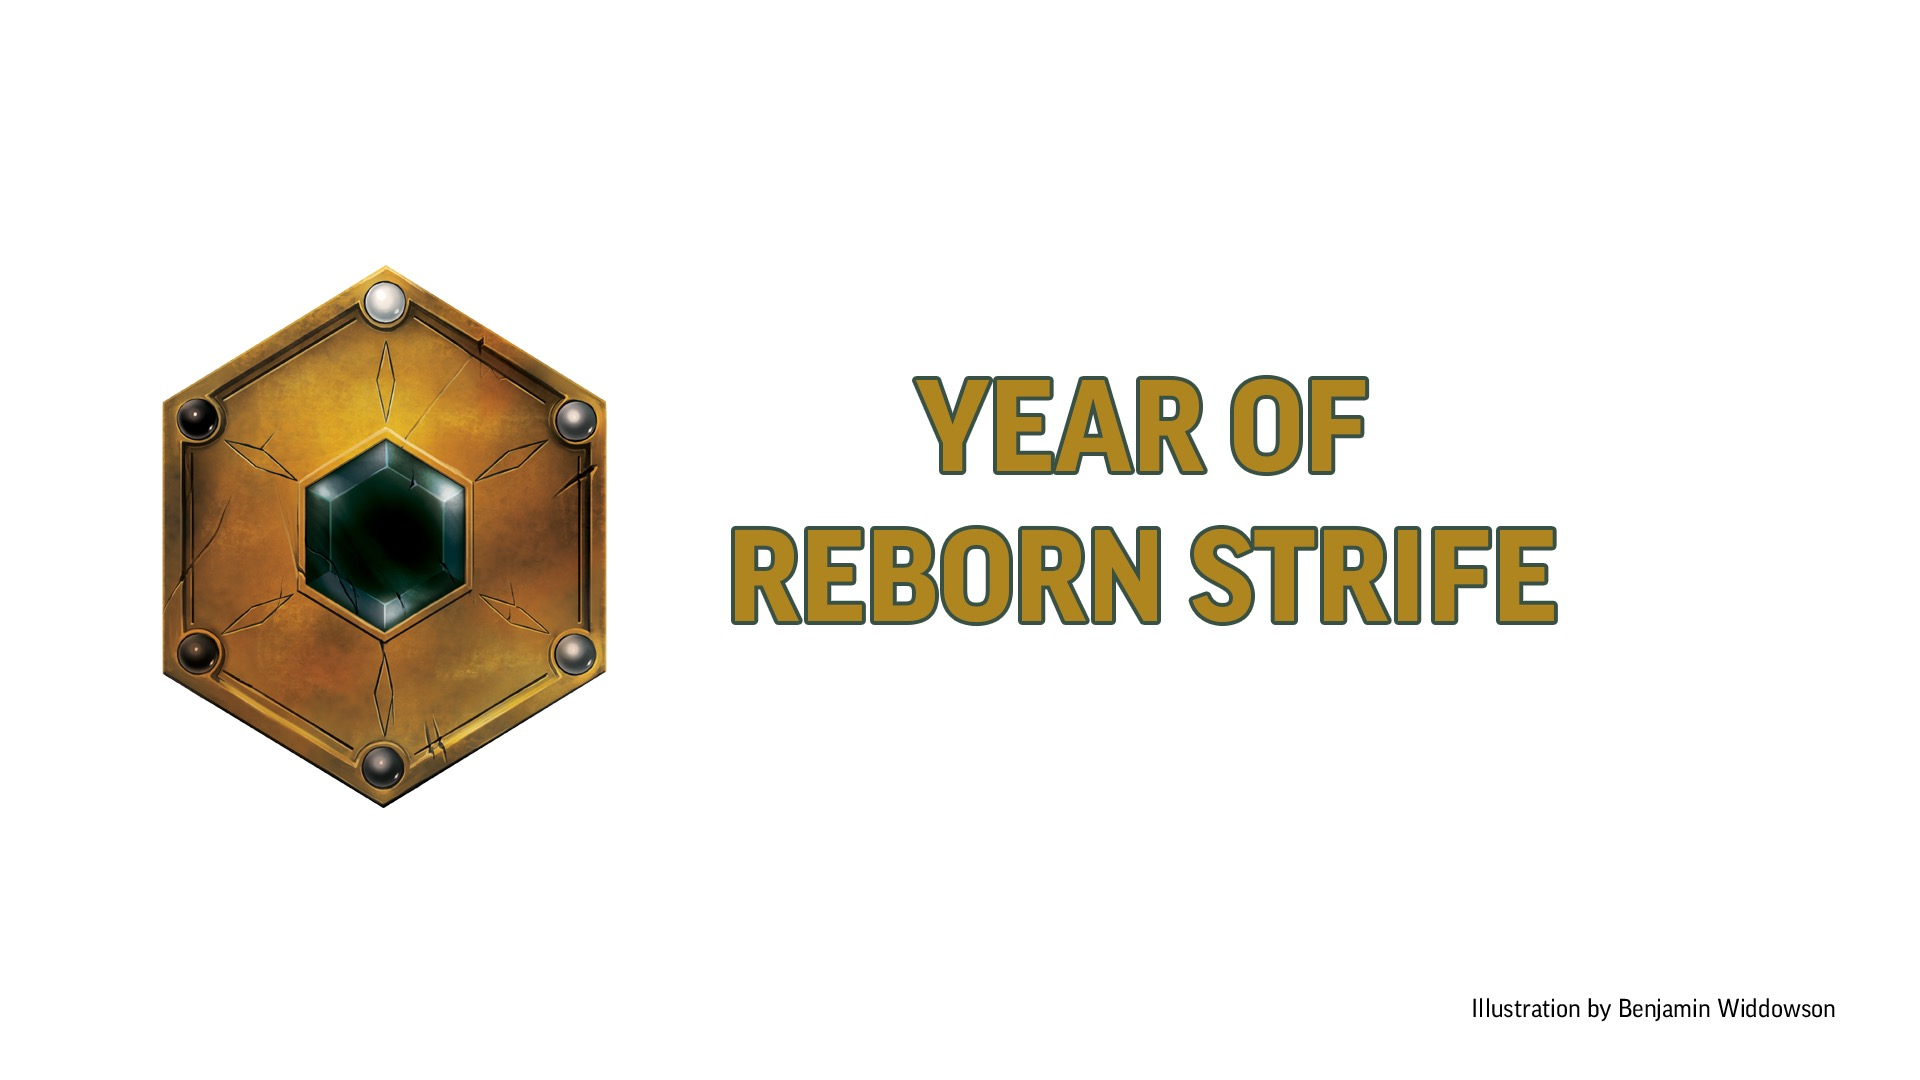 Pathfinder Adventure Card Society: 	Year of Reborn Strife Symbol